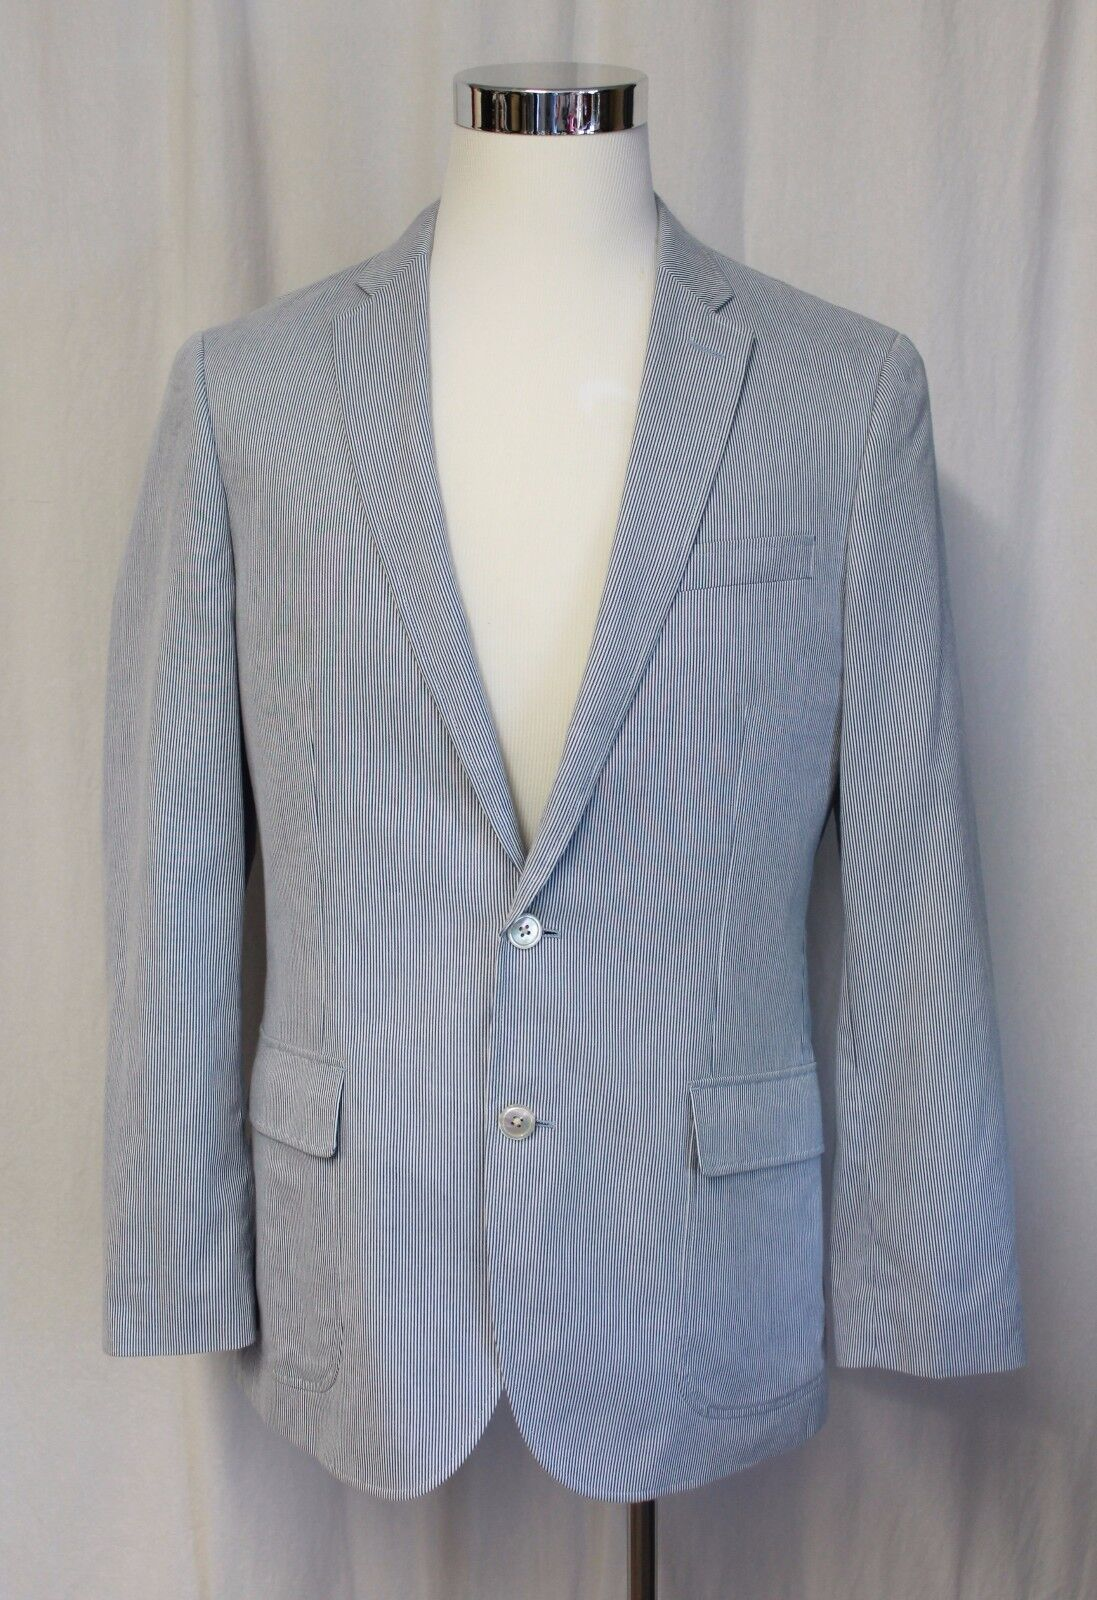 J CREW LUDLOW SPORTCOAT IN ENGINEER STRIPE COTTON blueE WHITE 40R NEW C0563